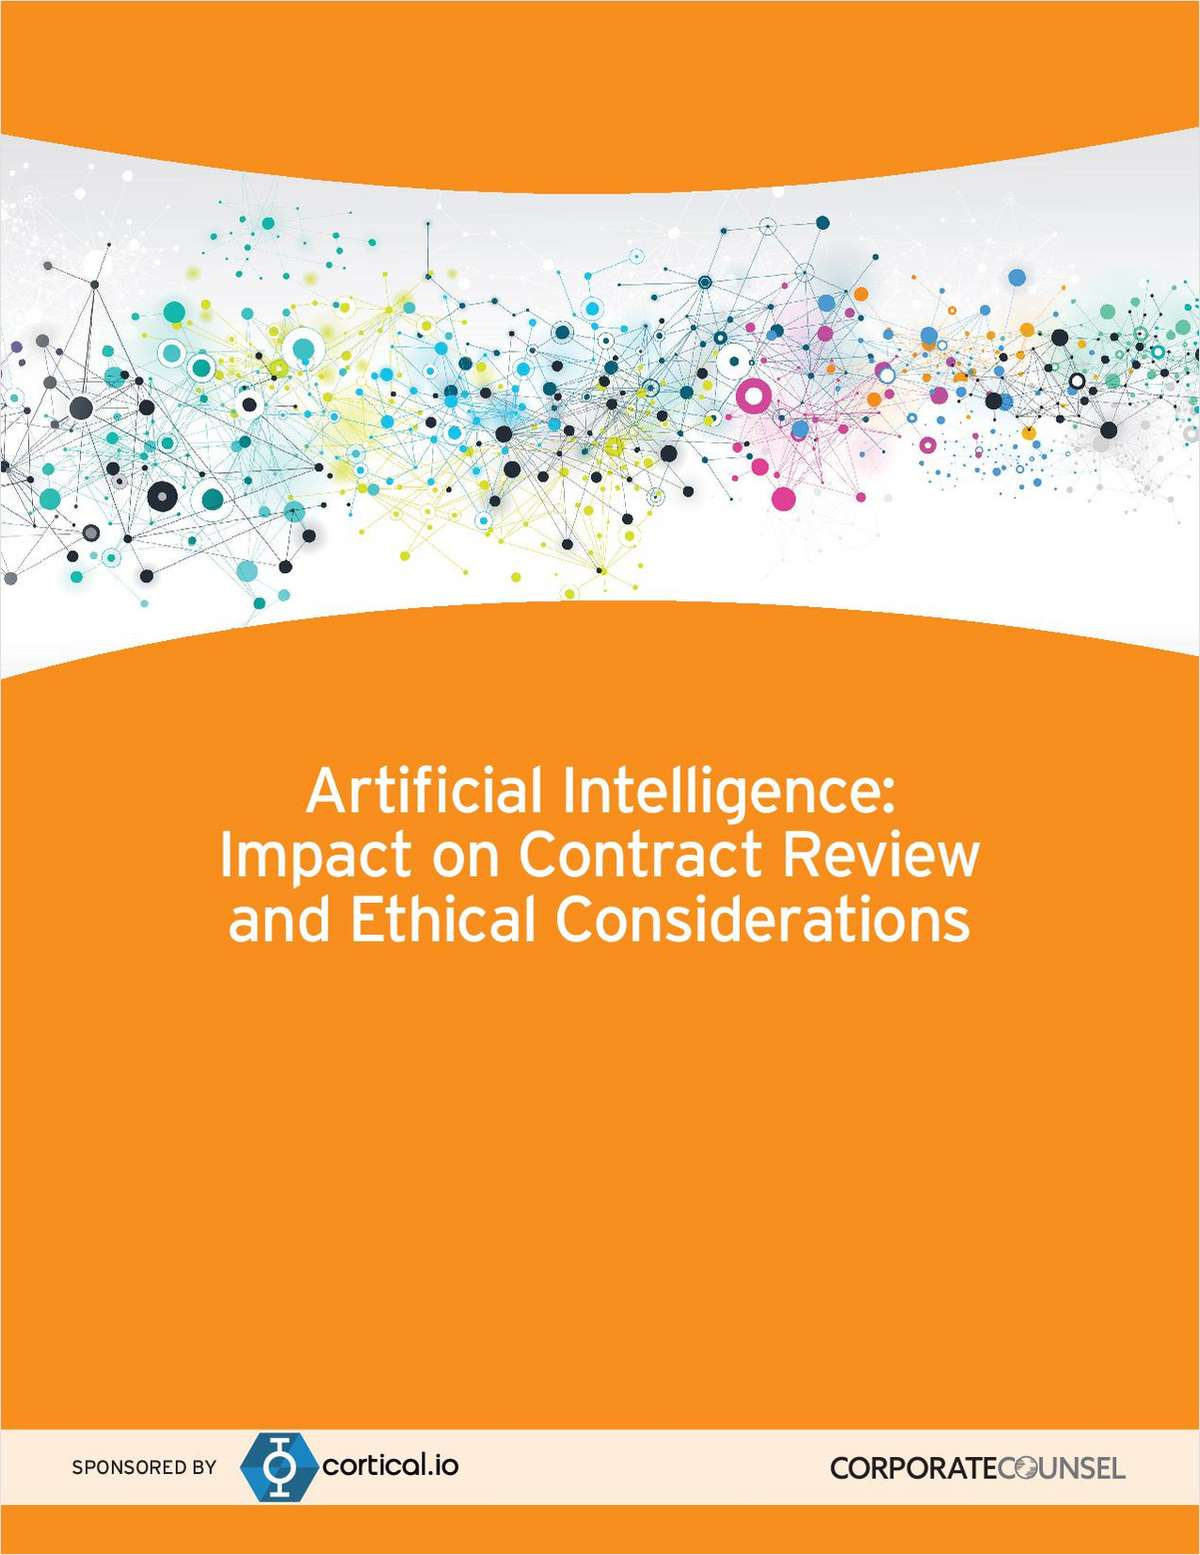 Artificial Intelligence: Impact on Contract Review and Ethical Considerations